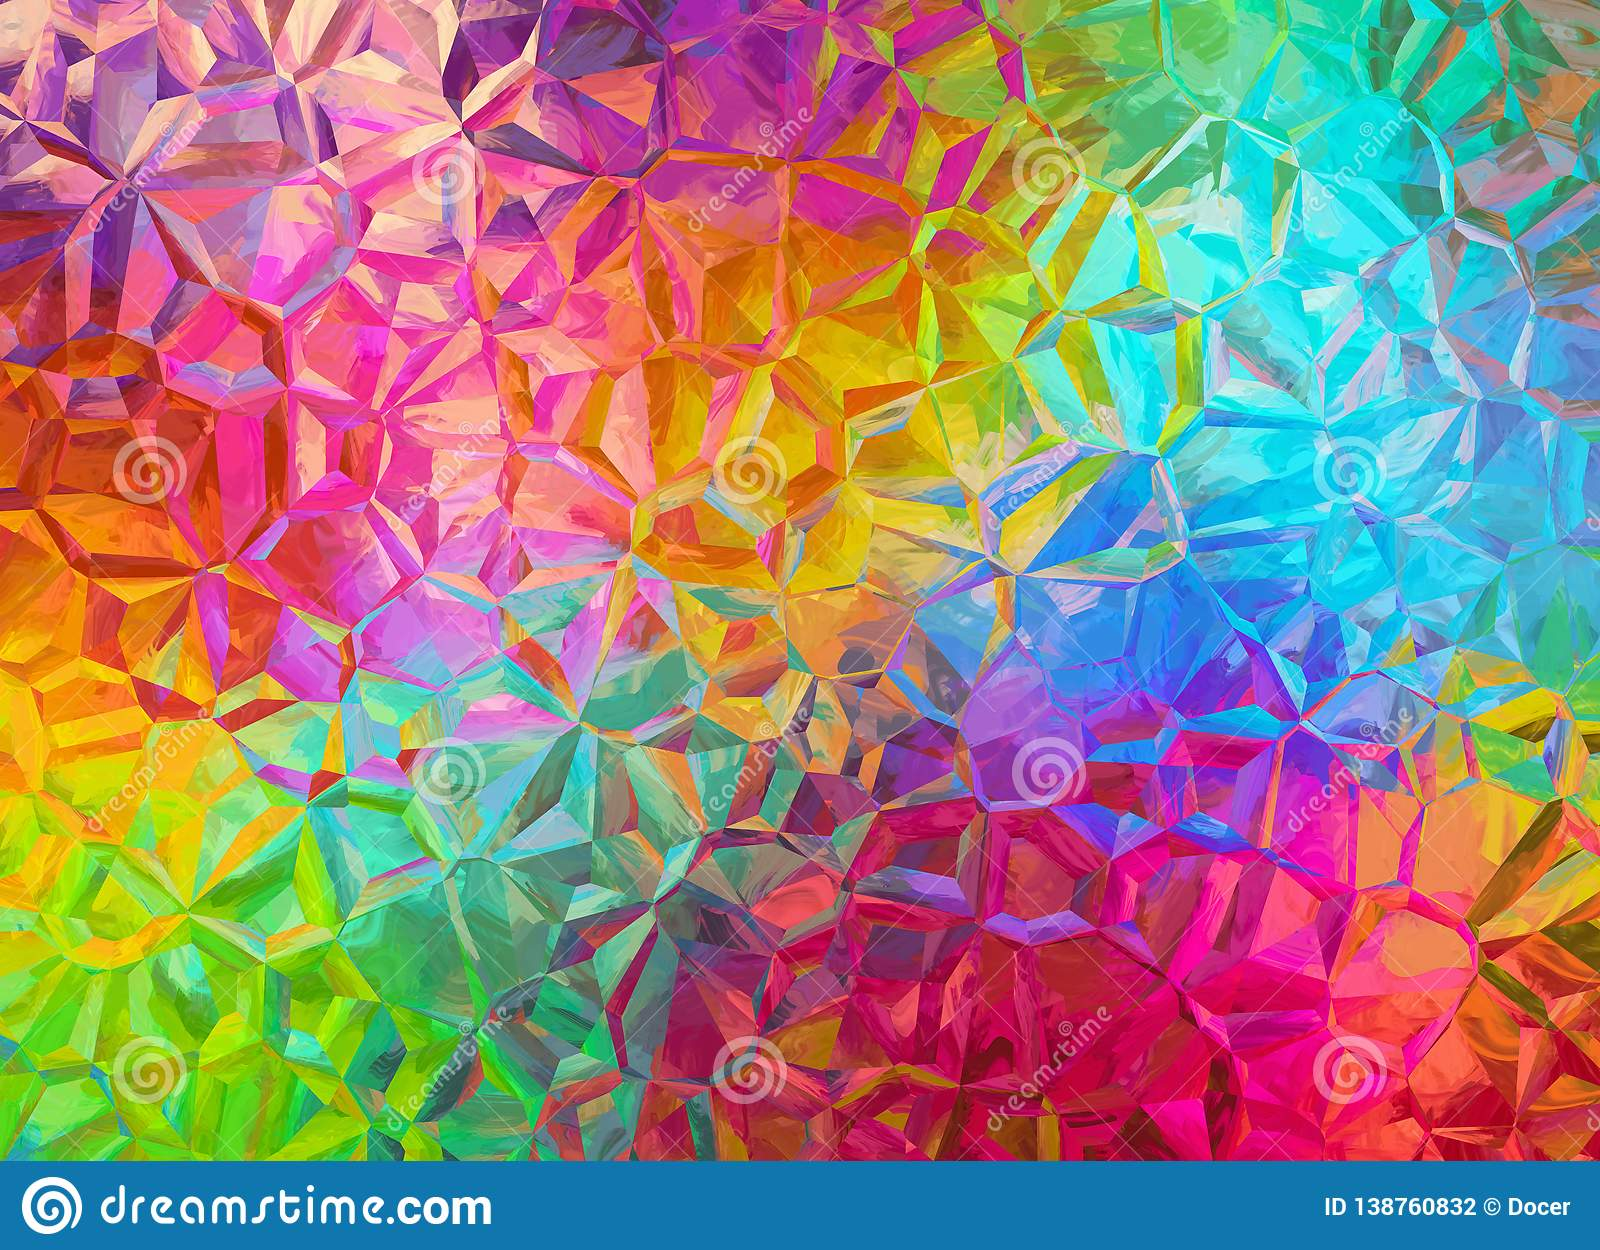 Colorful Crystal Background Texture Stock Illustration Illustration Of Backgrounds Shapes 138760832